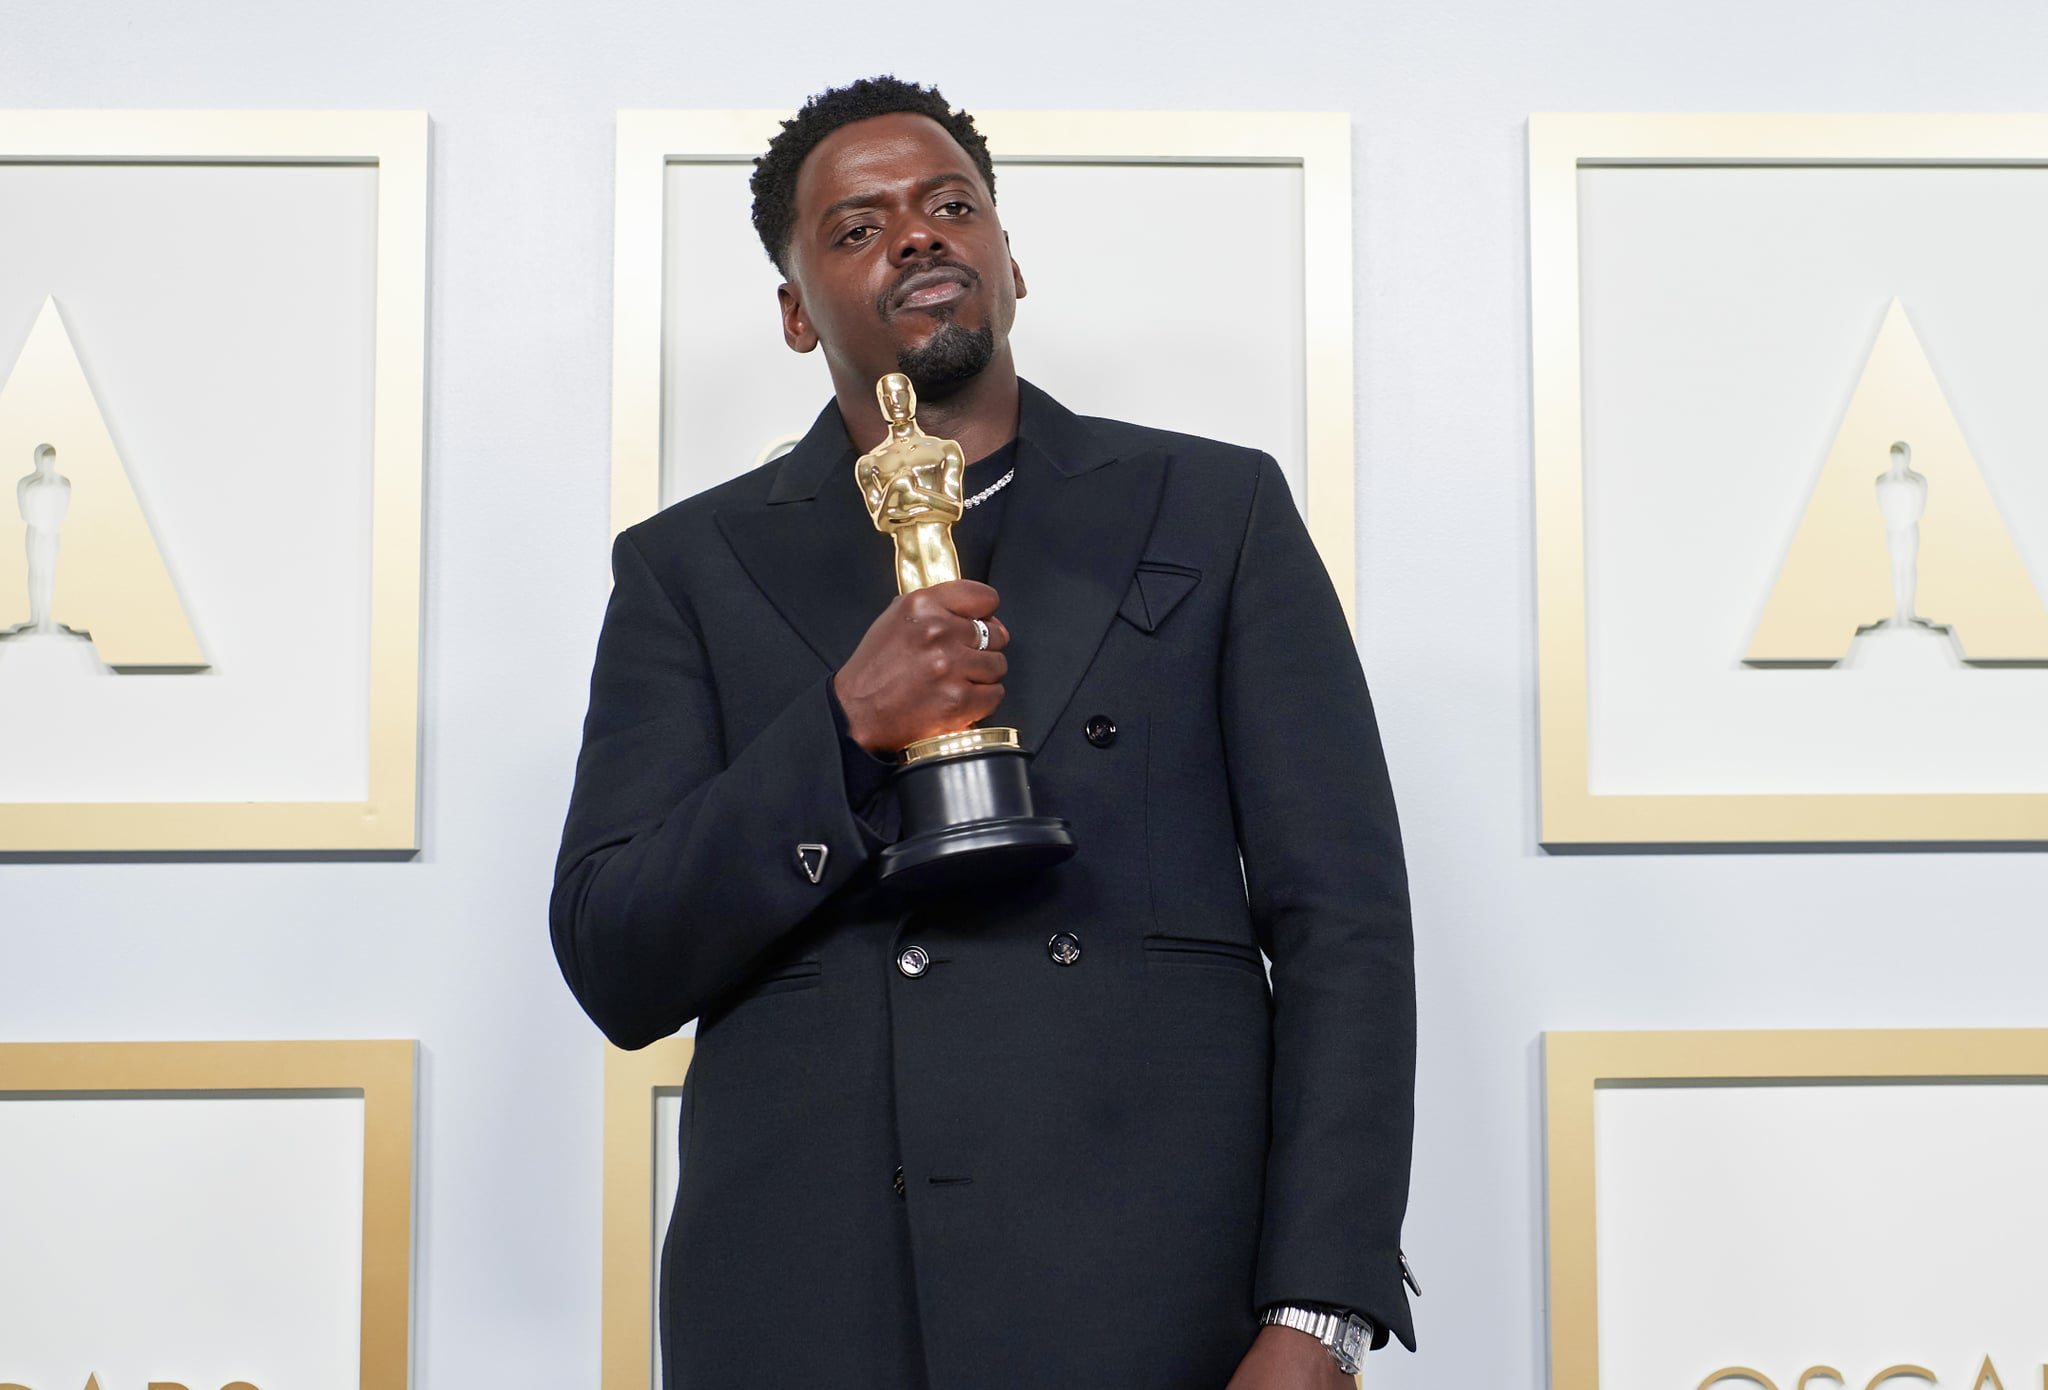 LOS ANGELES, CALIFORNIA – APRIL 25: (EDITORIAL USE ONLY) In this handout photo provided by A.M.P.A.S., Daniel Kaluuya poses with the Best Actor in a Supporting Role award for 'Judas and the Black Messiah' in the press room during the 93rd Annual Academy Awards at Union Station on April 25, 2021 in Los Angeles, California. (Photo by Matt Petit/A.M.P.A.S. via Getty Images)